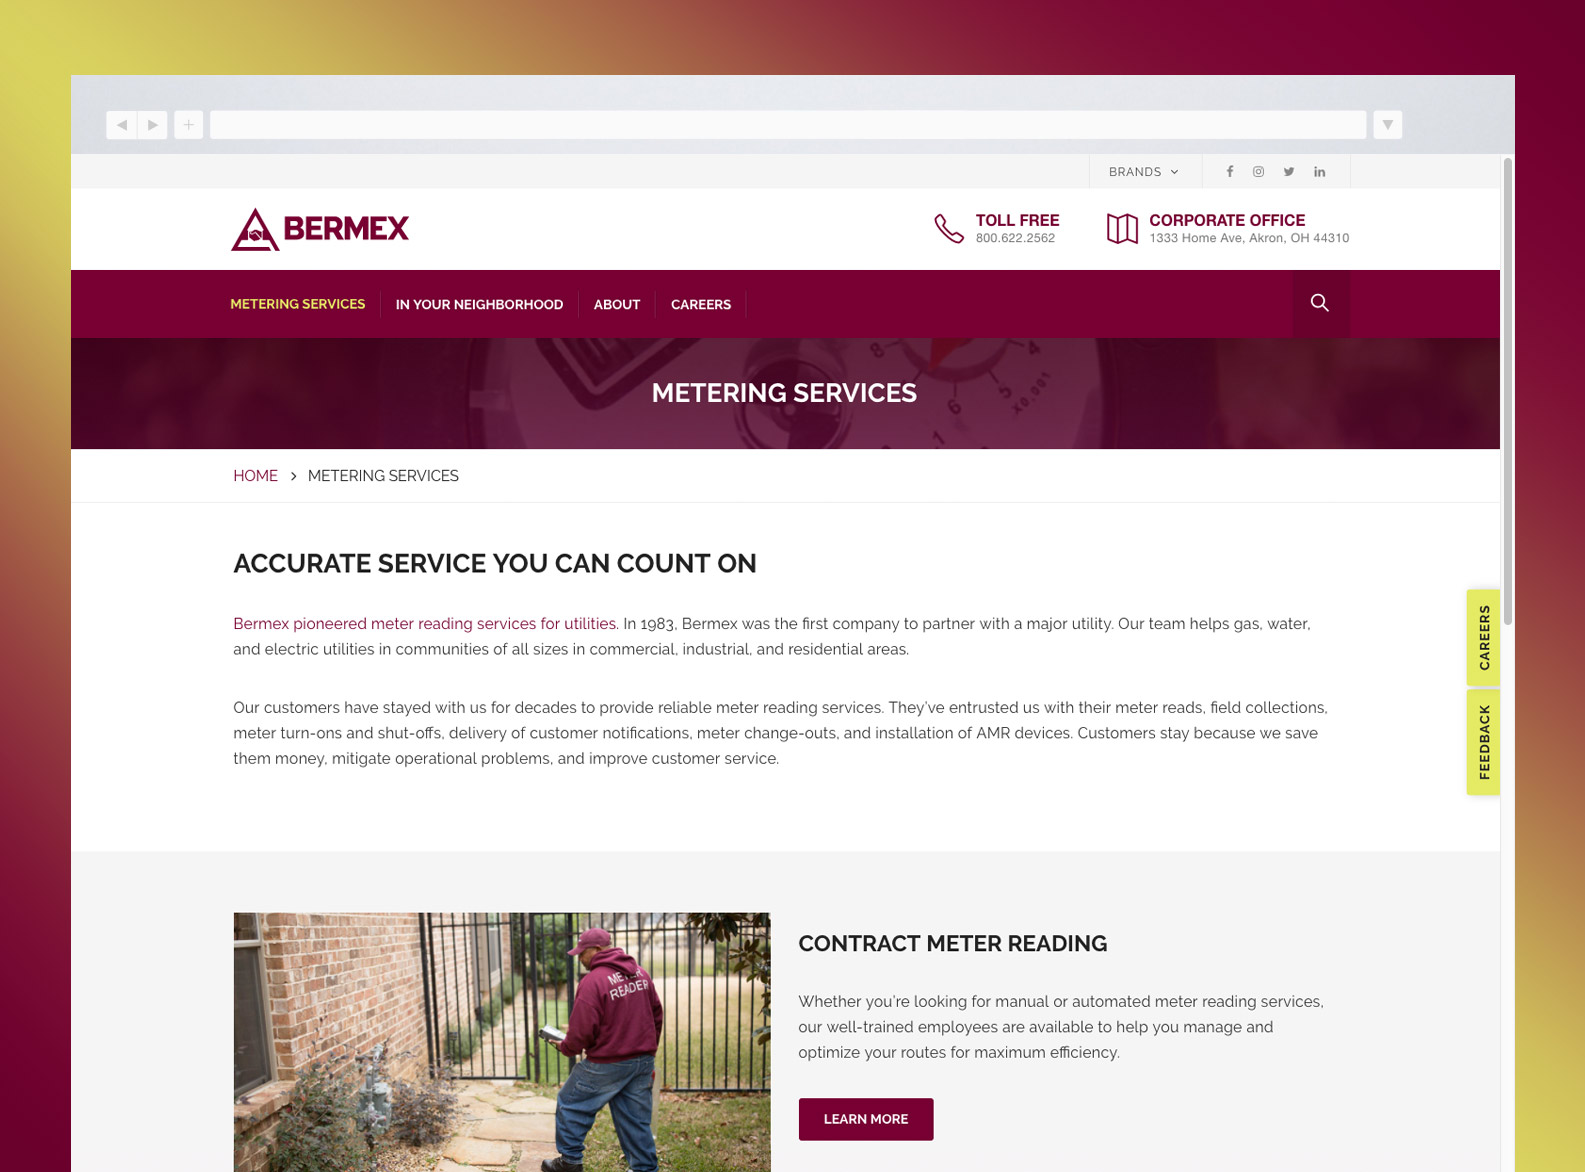 Bermex Services page